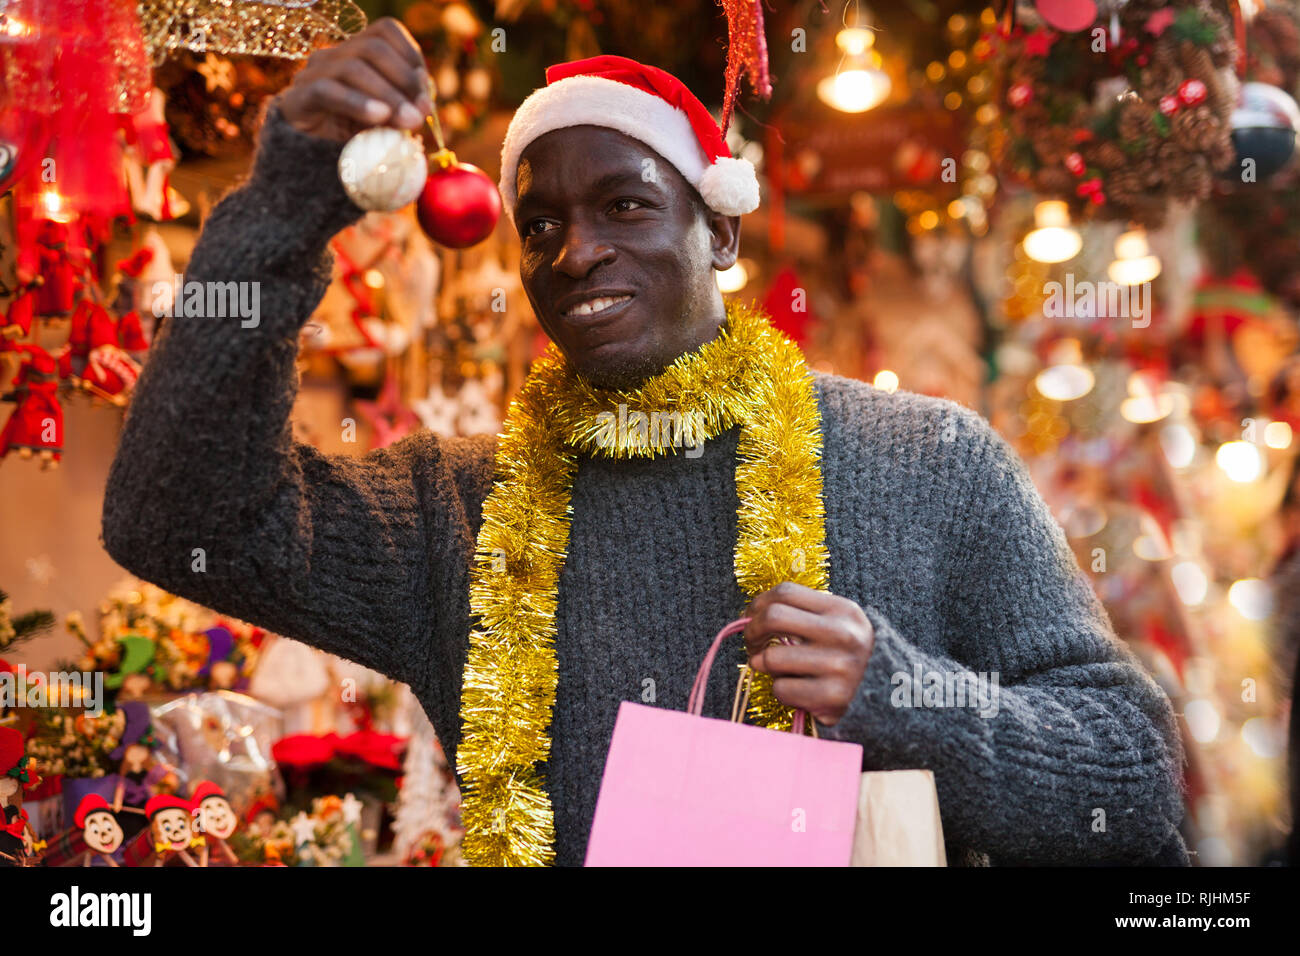 c8efbc6100a53 Smiling African American man in Santa hat selecting festive home decoration  at outdoor Christmas fair -